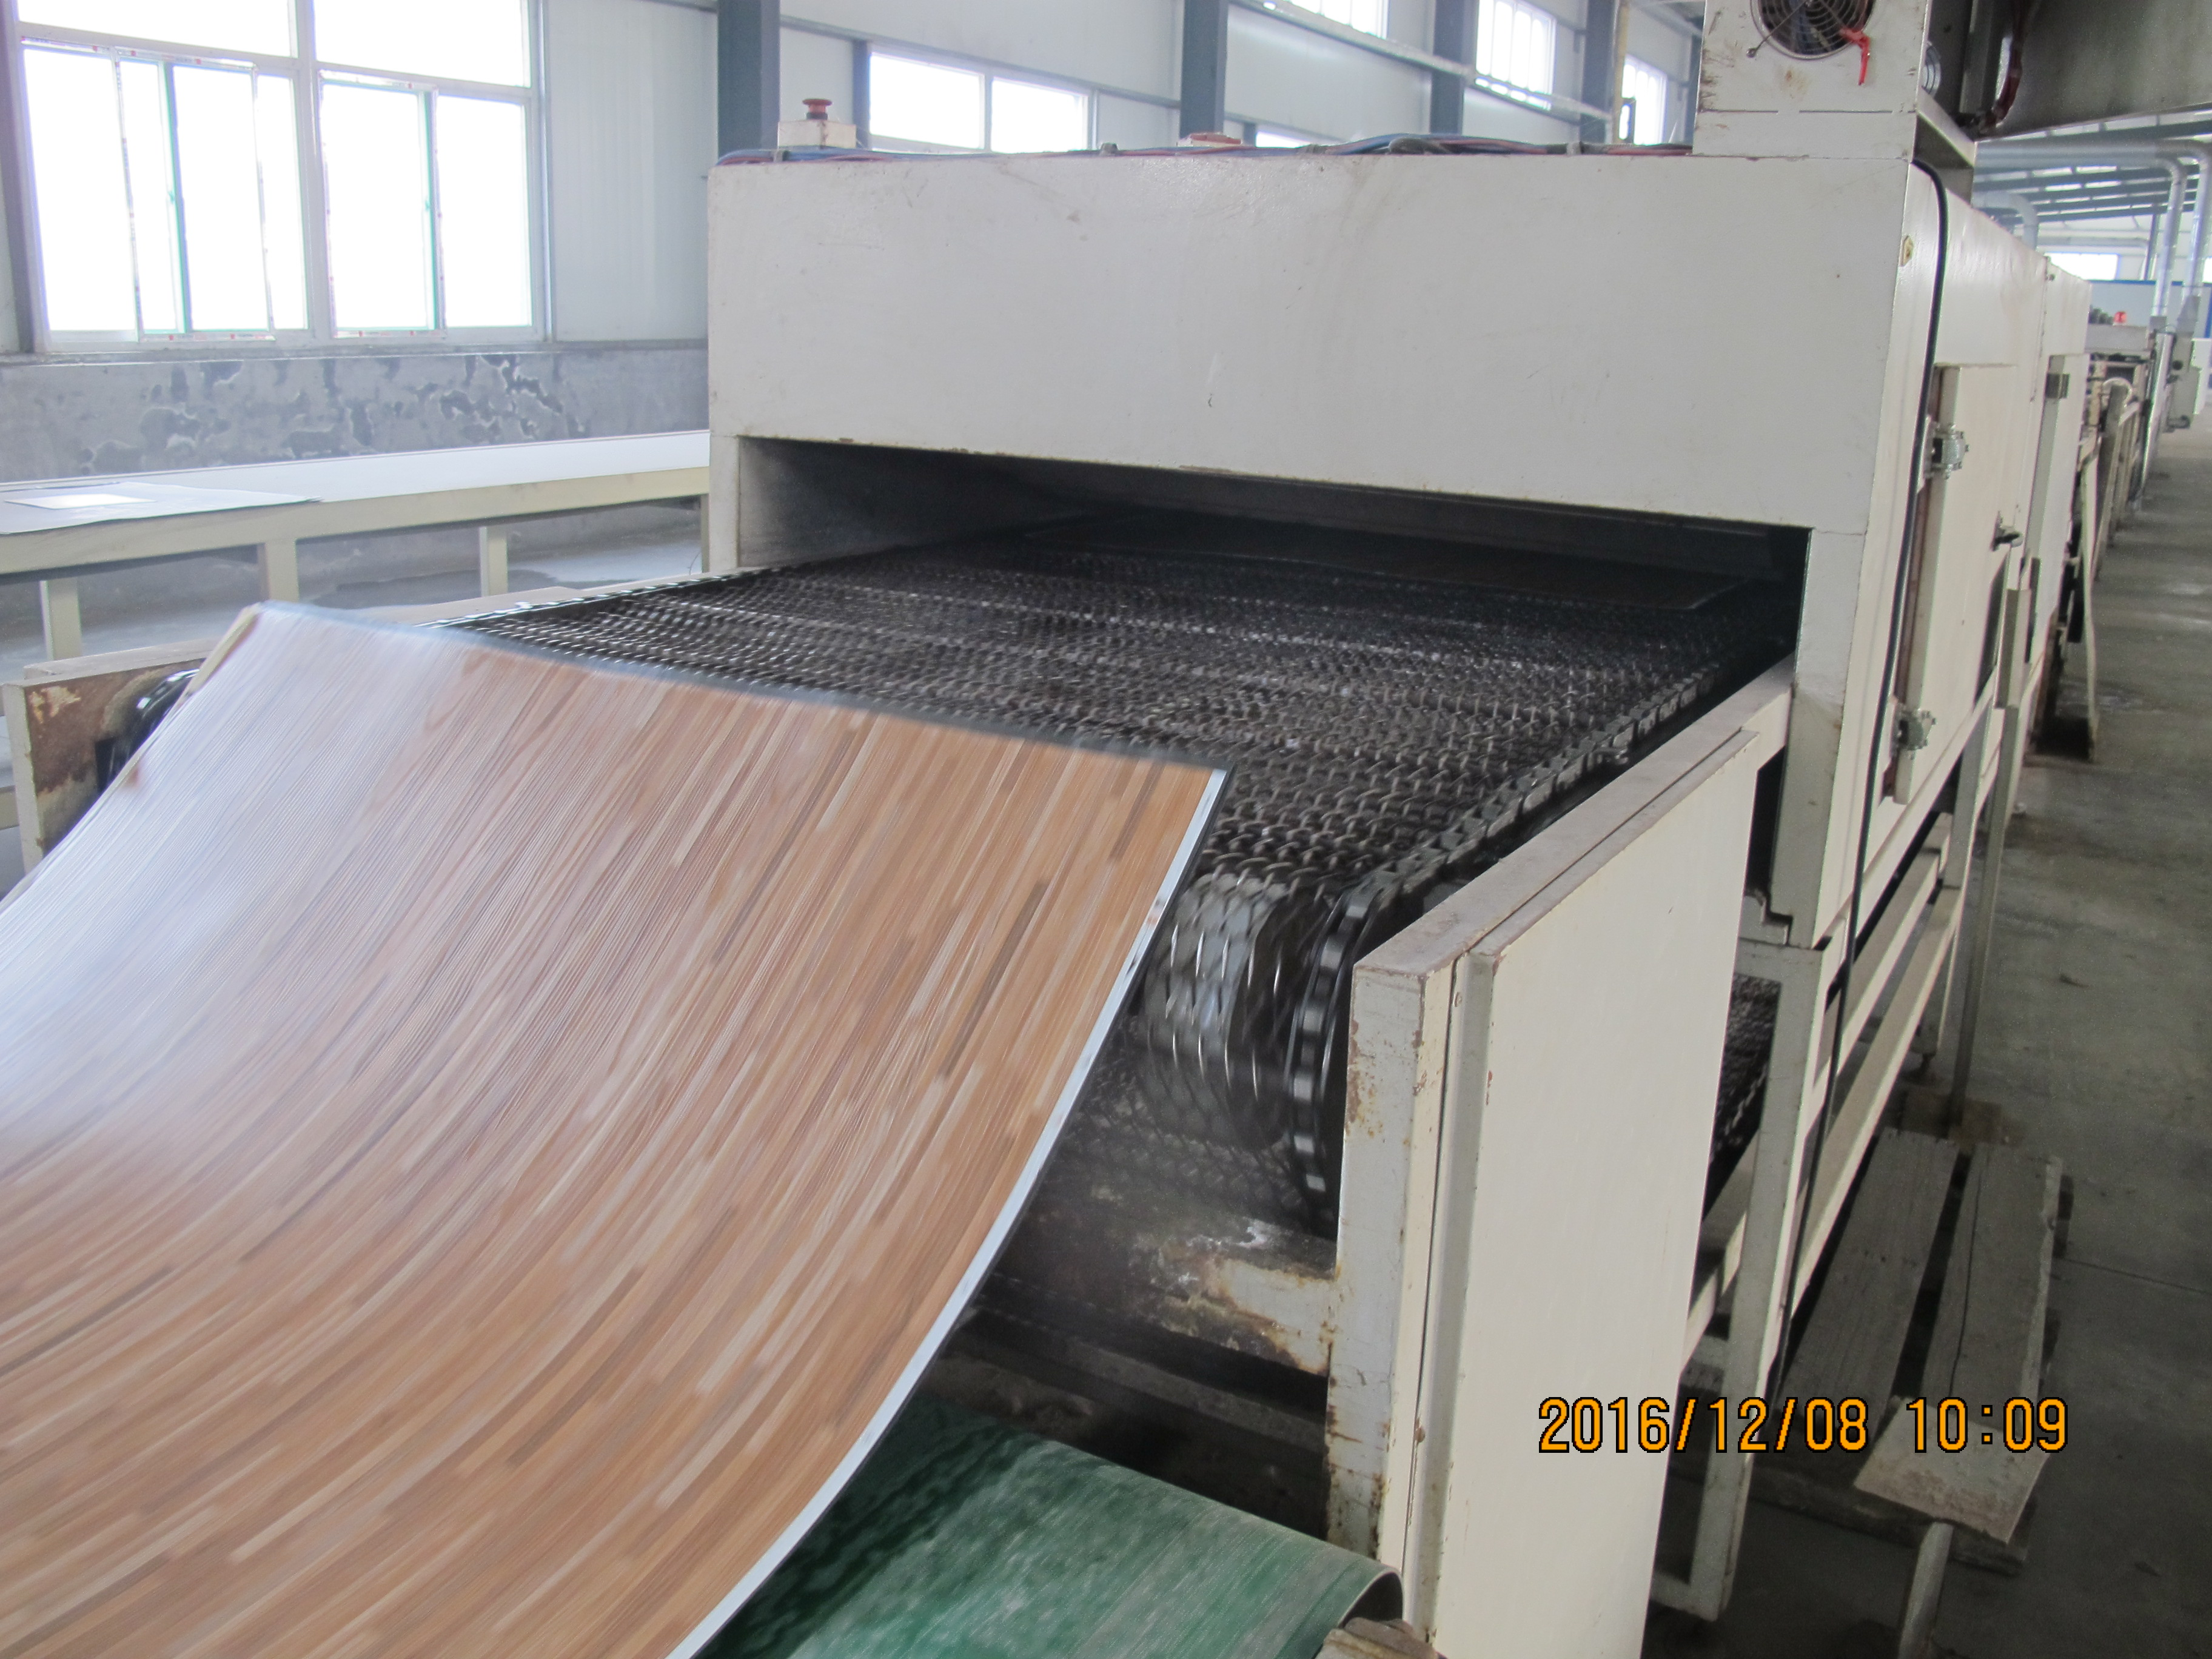 Professional absorb noise carpet type pvc floor for United Arab Emirates